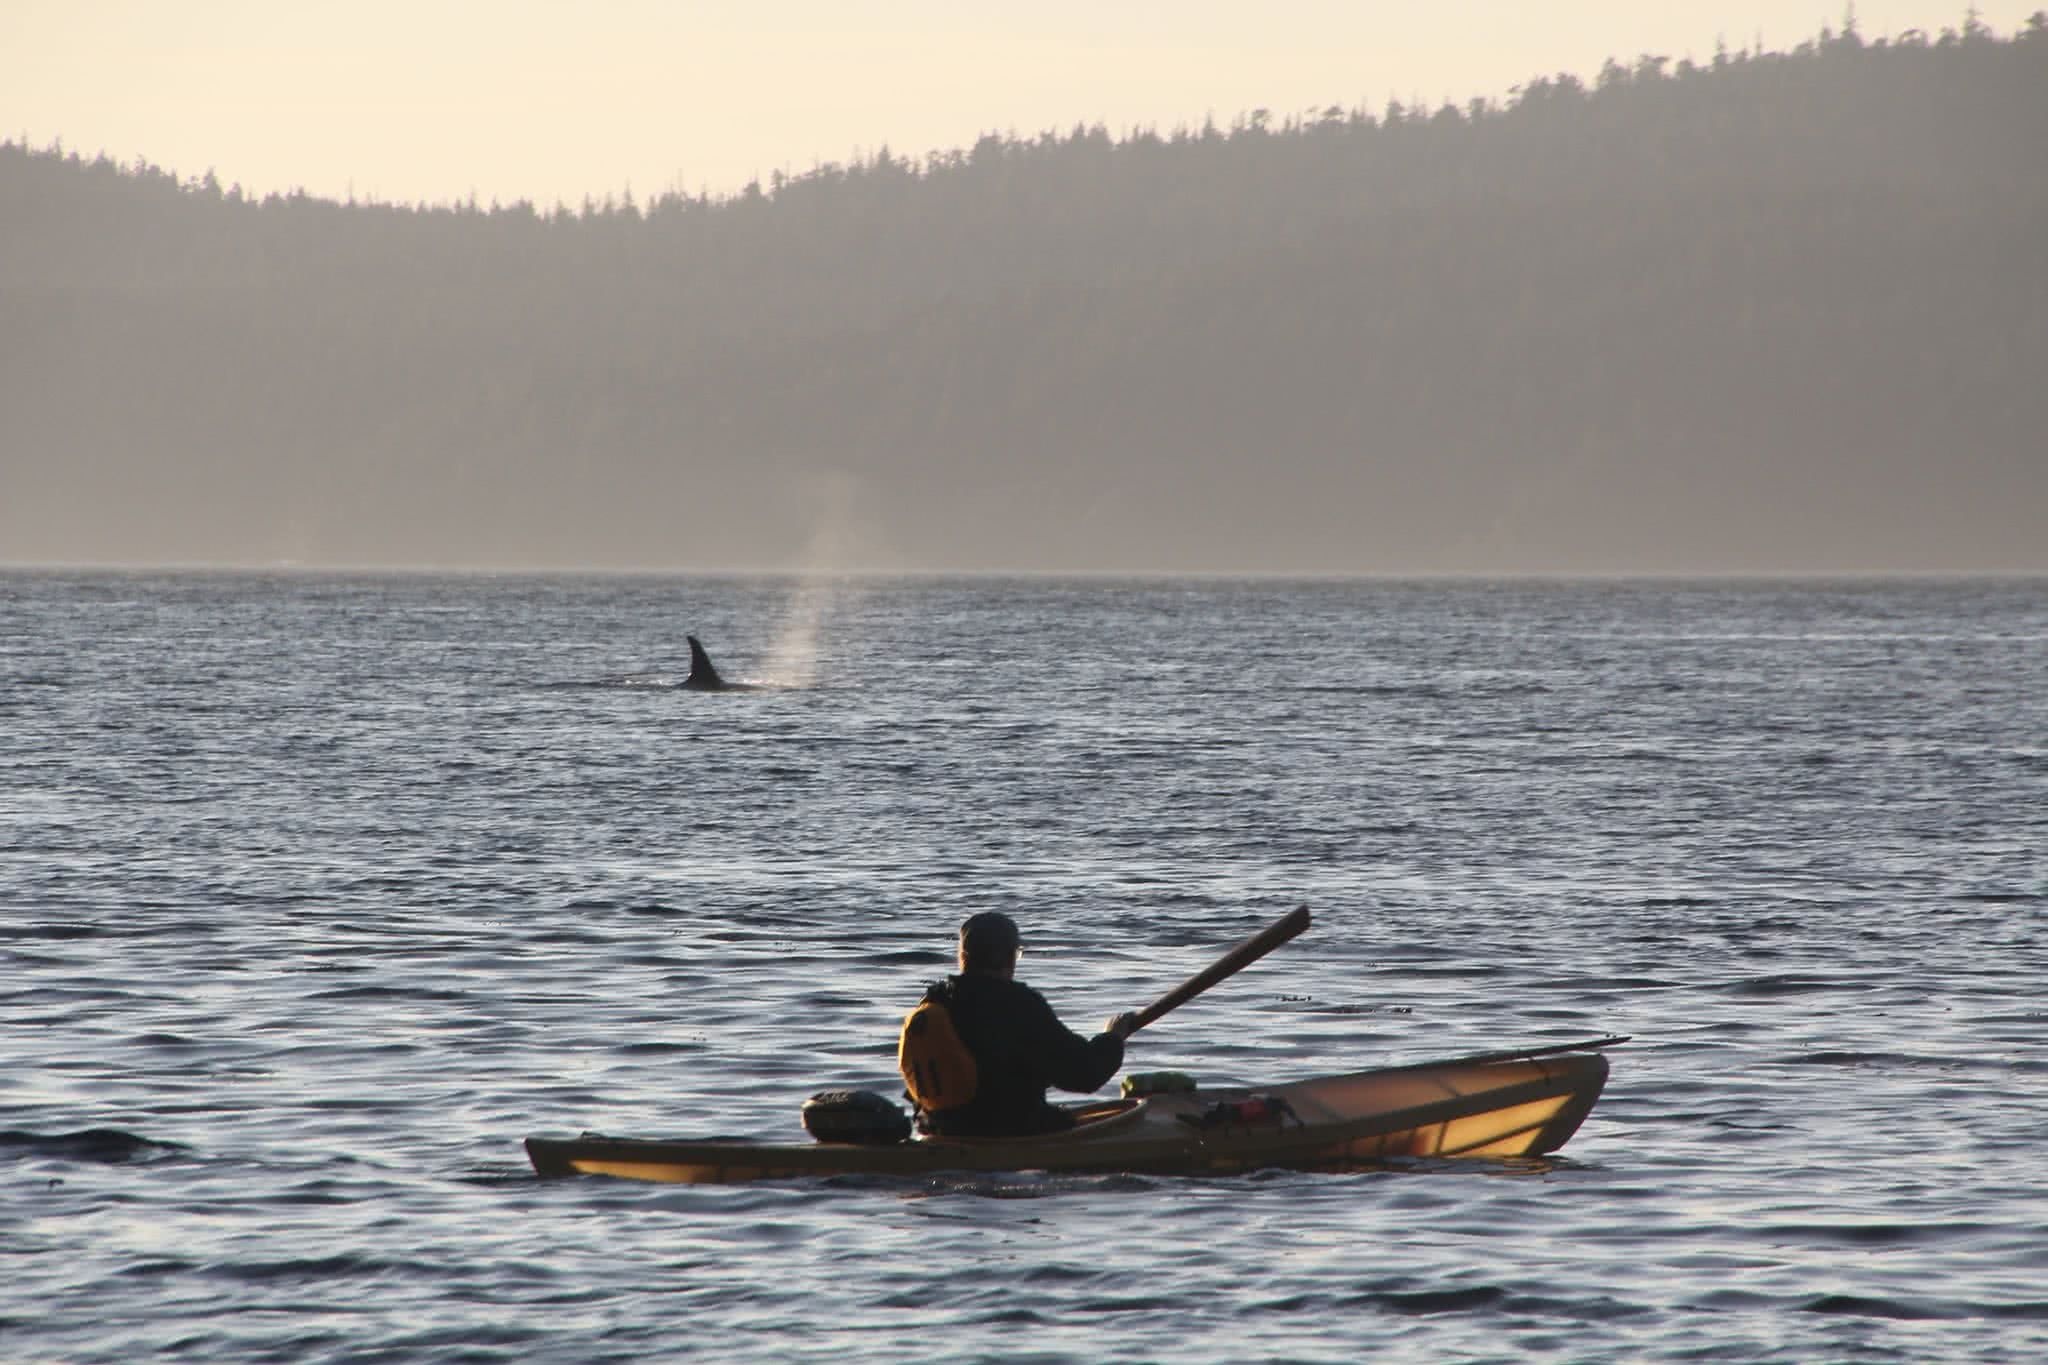 Paddling the Inside Passage: Q & A with Going Solo Adventures